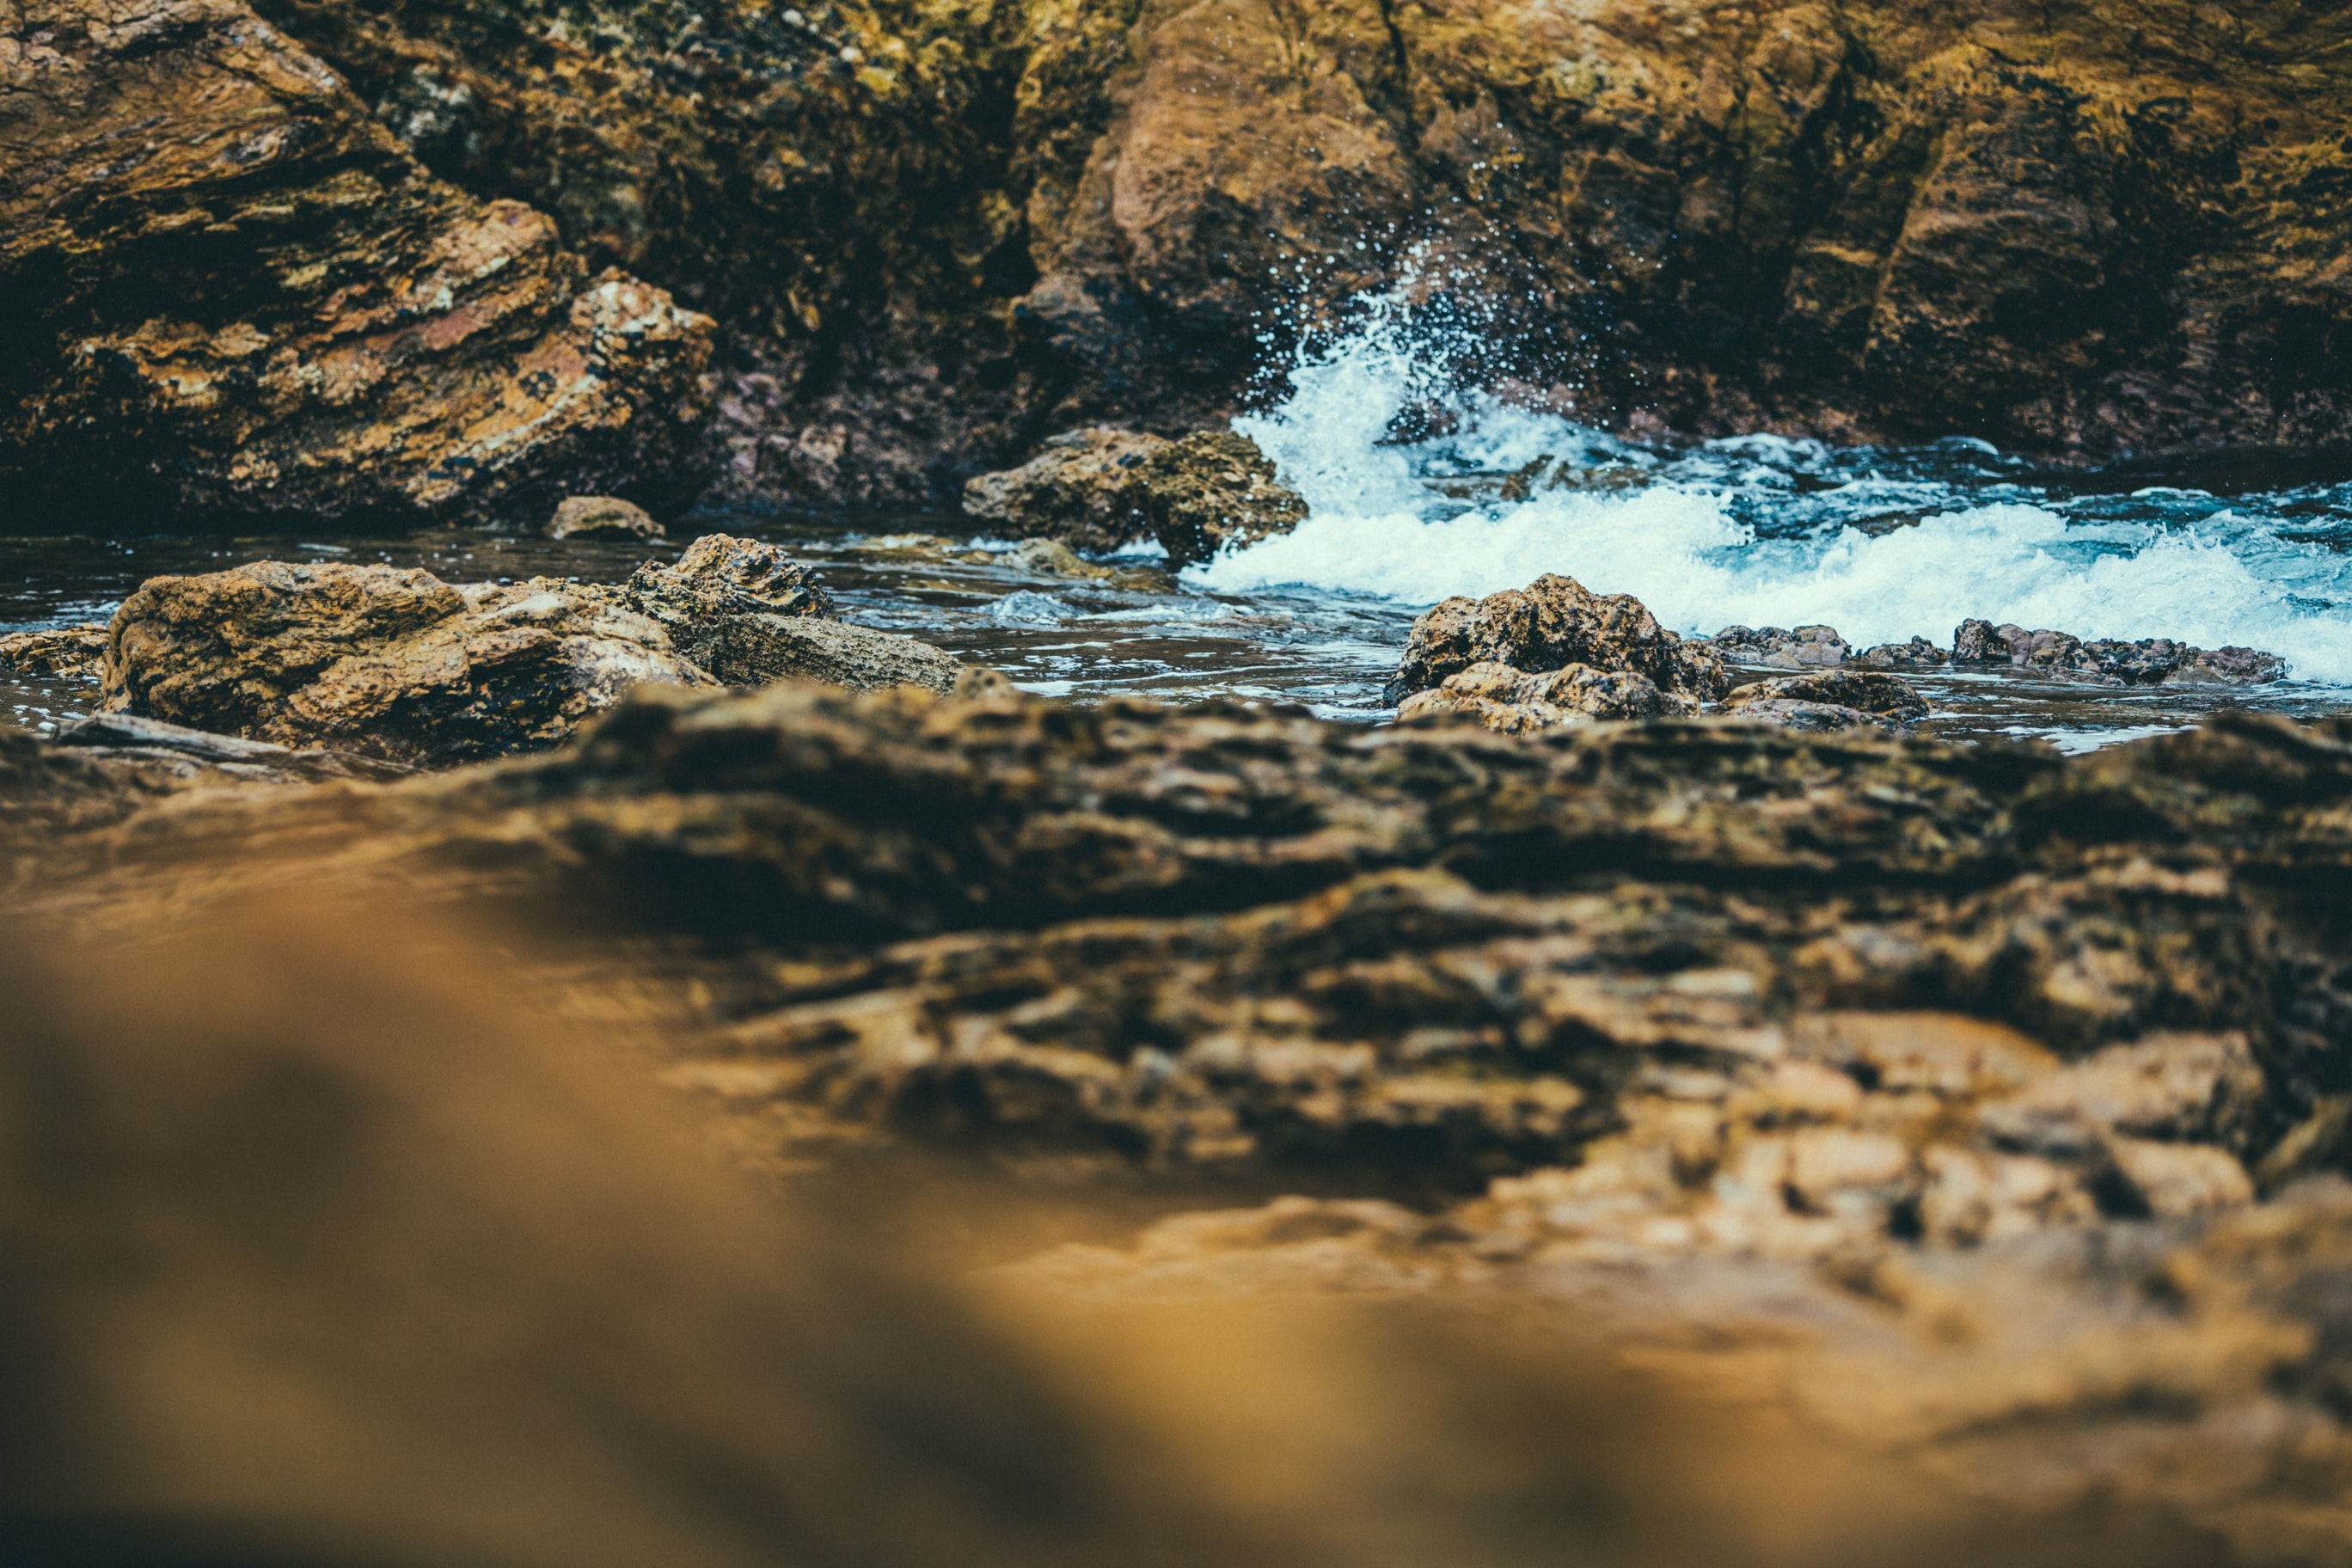 landscape photography of rock structure near body of water